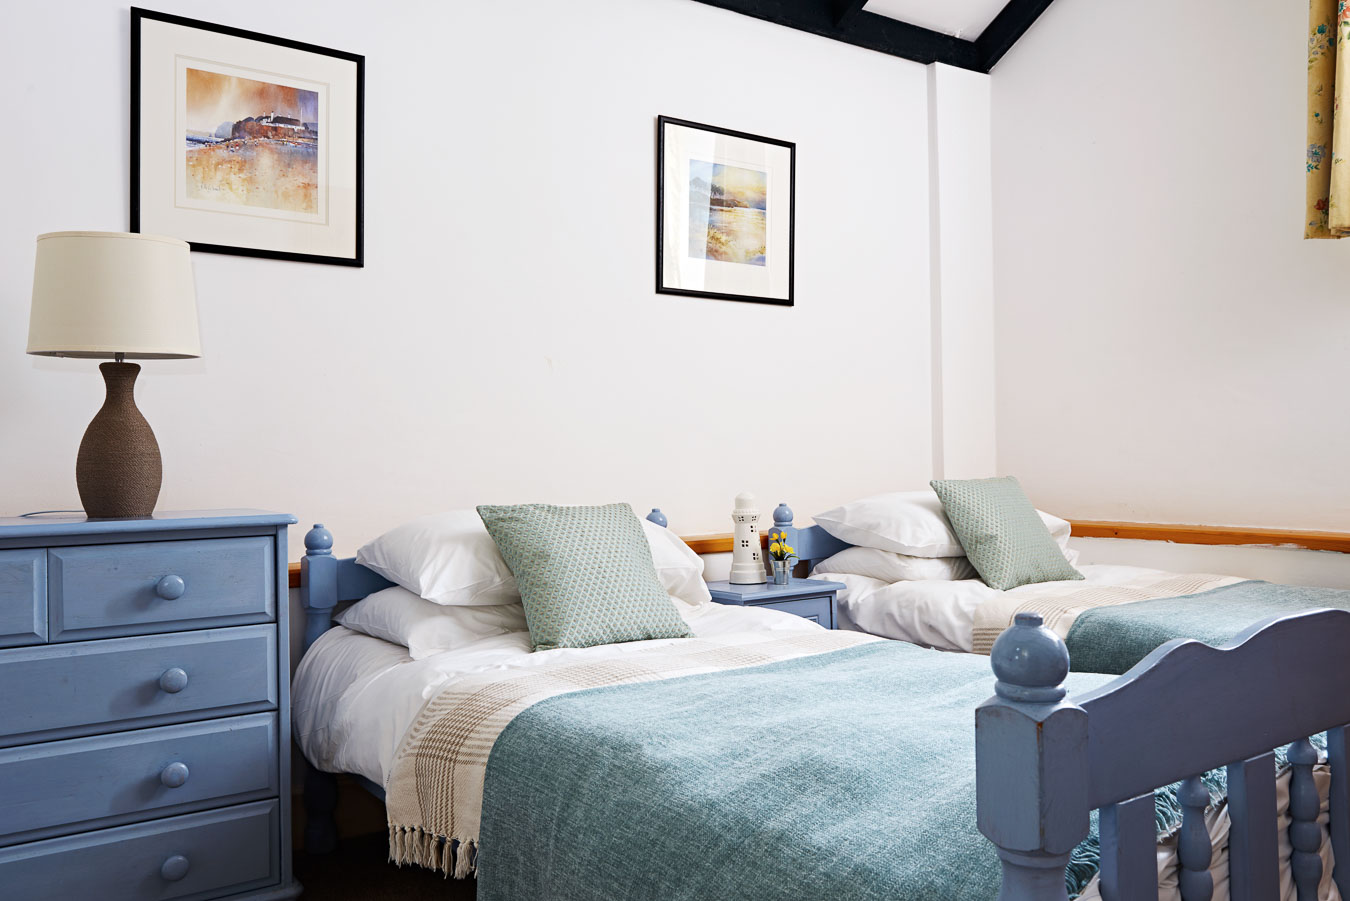 The first floor twin room in The Linhay cottage Flear Farm with blue painted beds and en suite bathroom with shower.